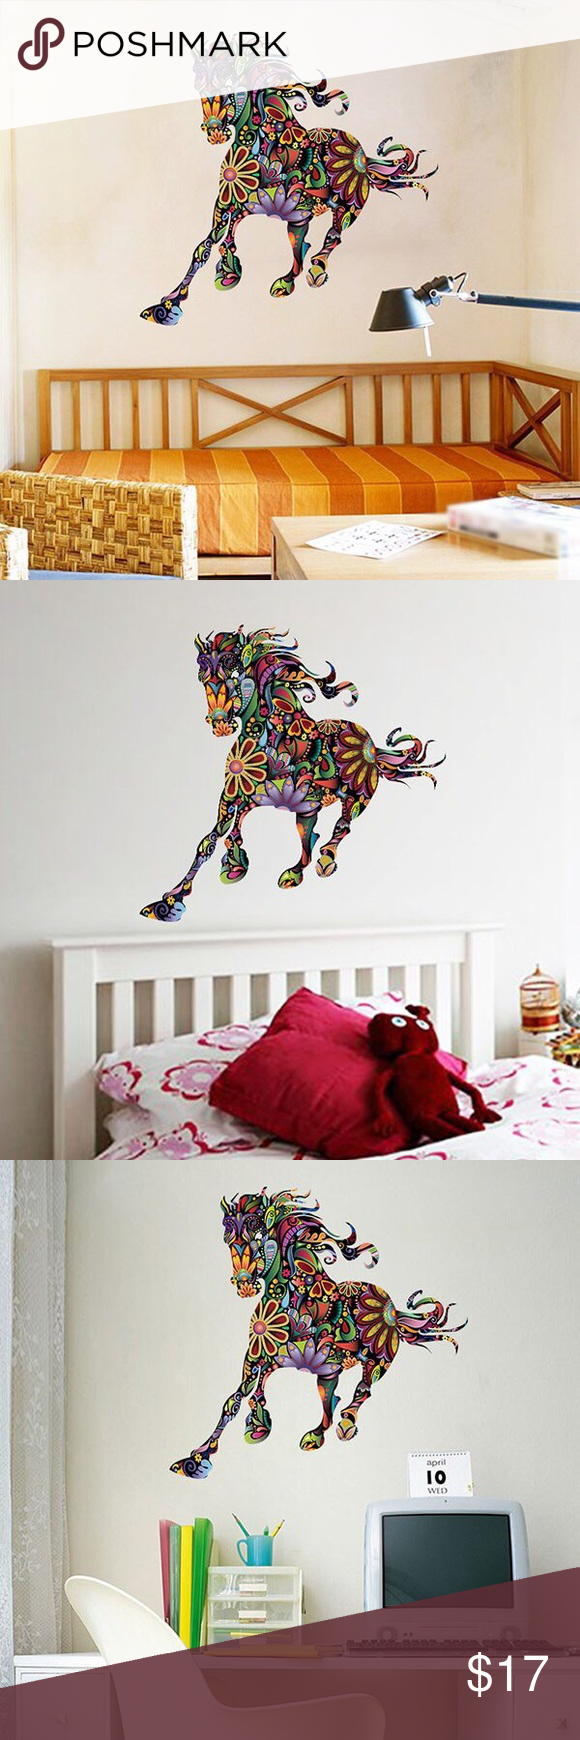 Decorative Removable Wall Art Beautiful Colorful Horse Removable Wall Art Other